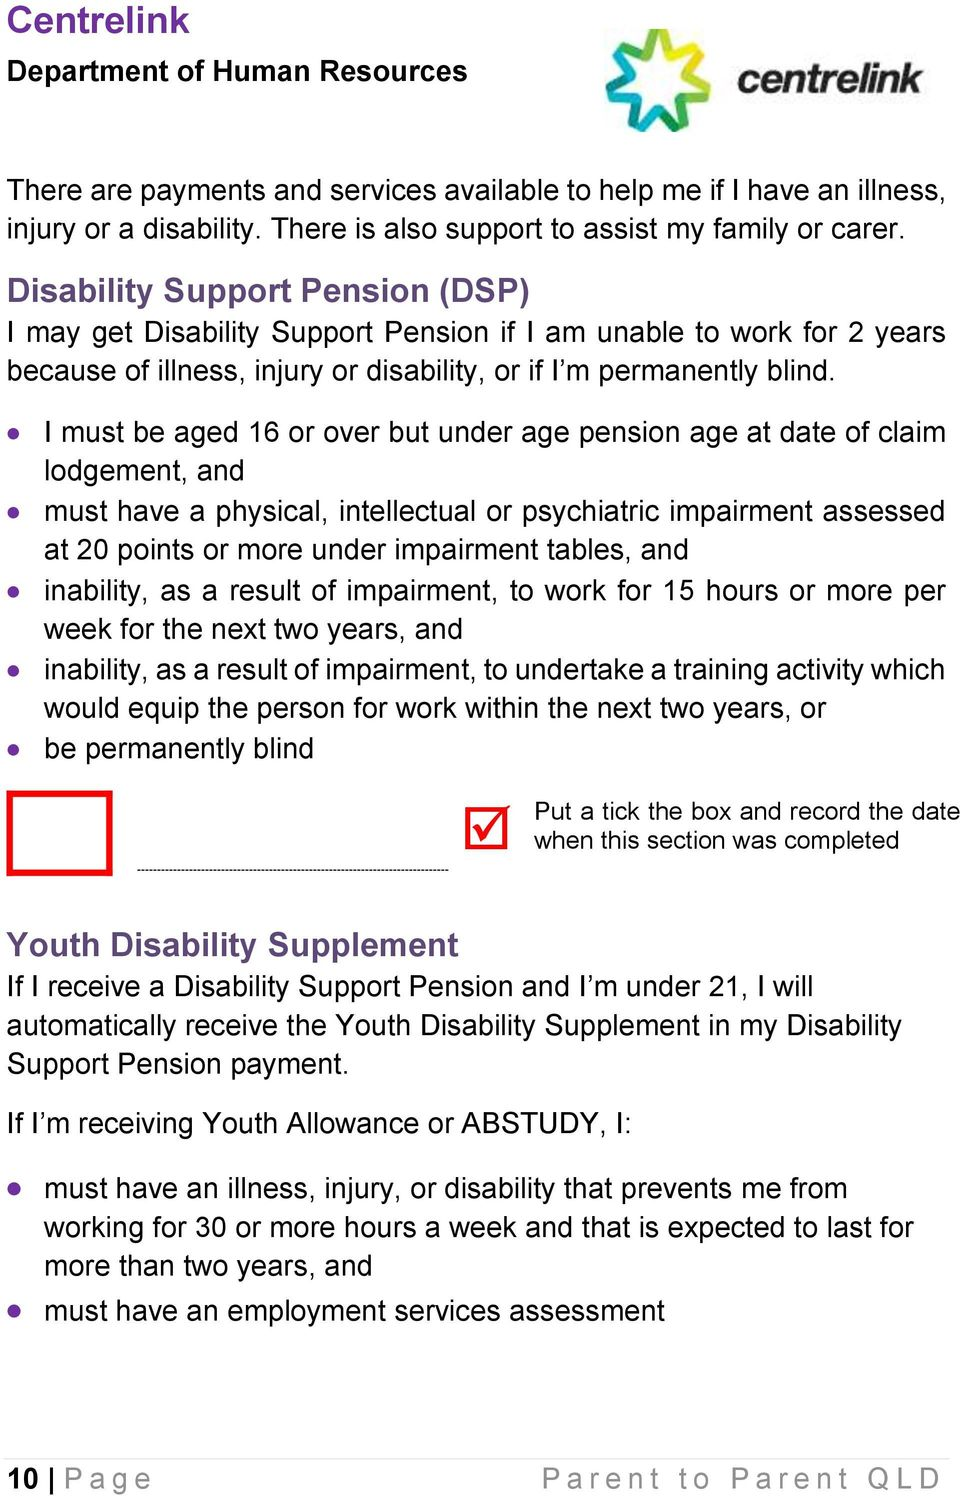 I must be aged 16 or over but under age pension age at date of claim lodgement, and must have a physical, intellectual or psychiatric impairment assessed at 20 points or more under impairment tables,